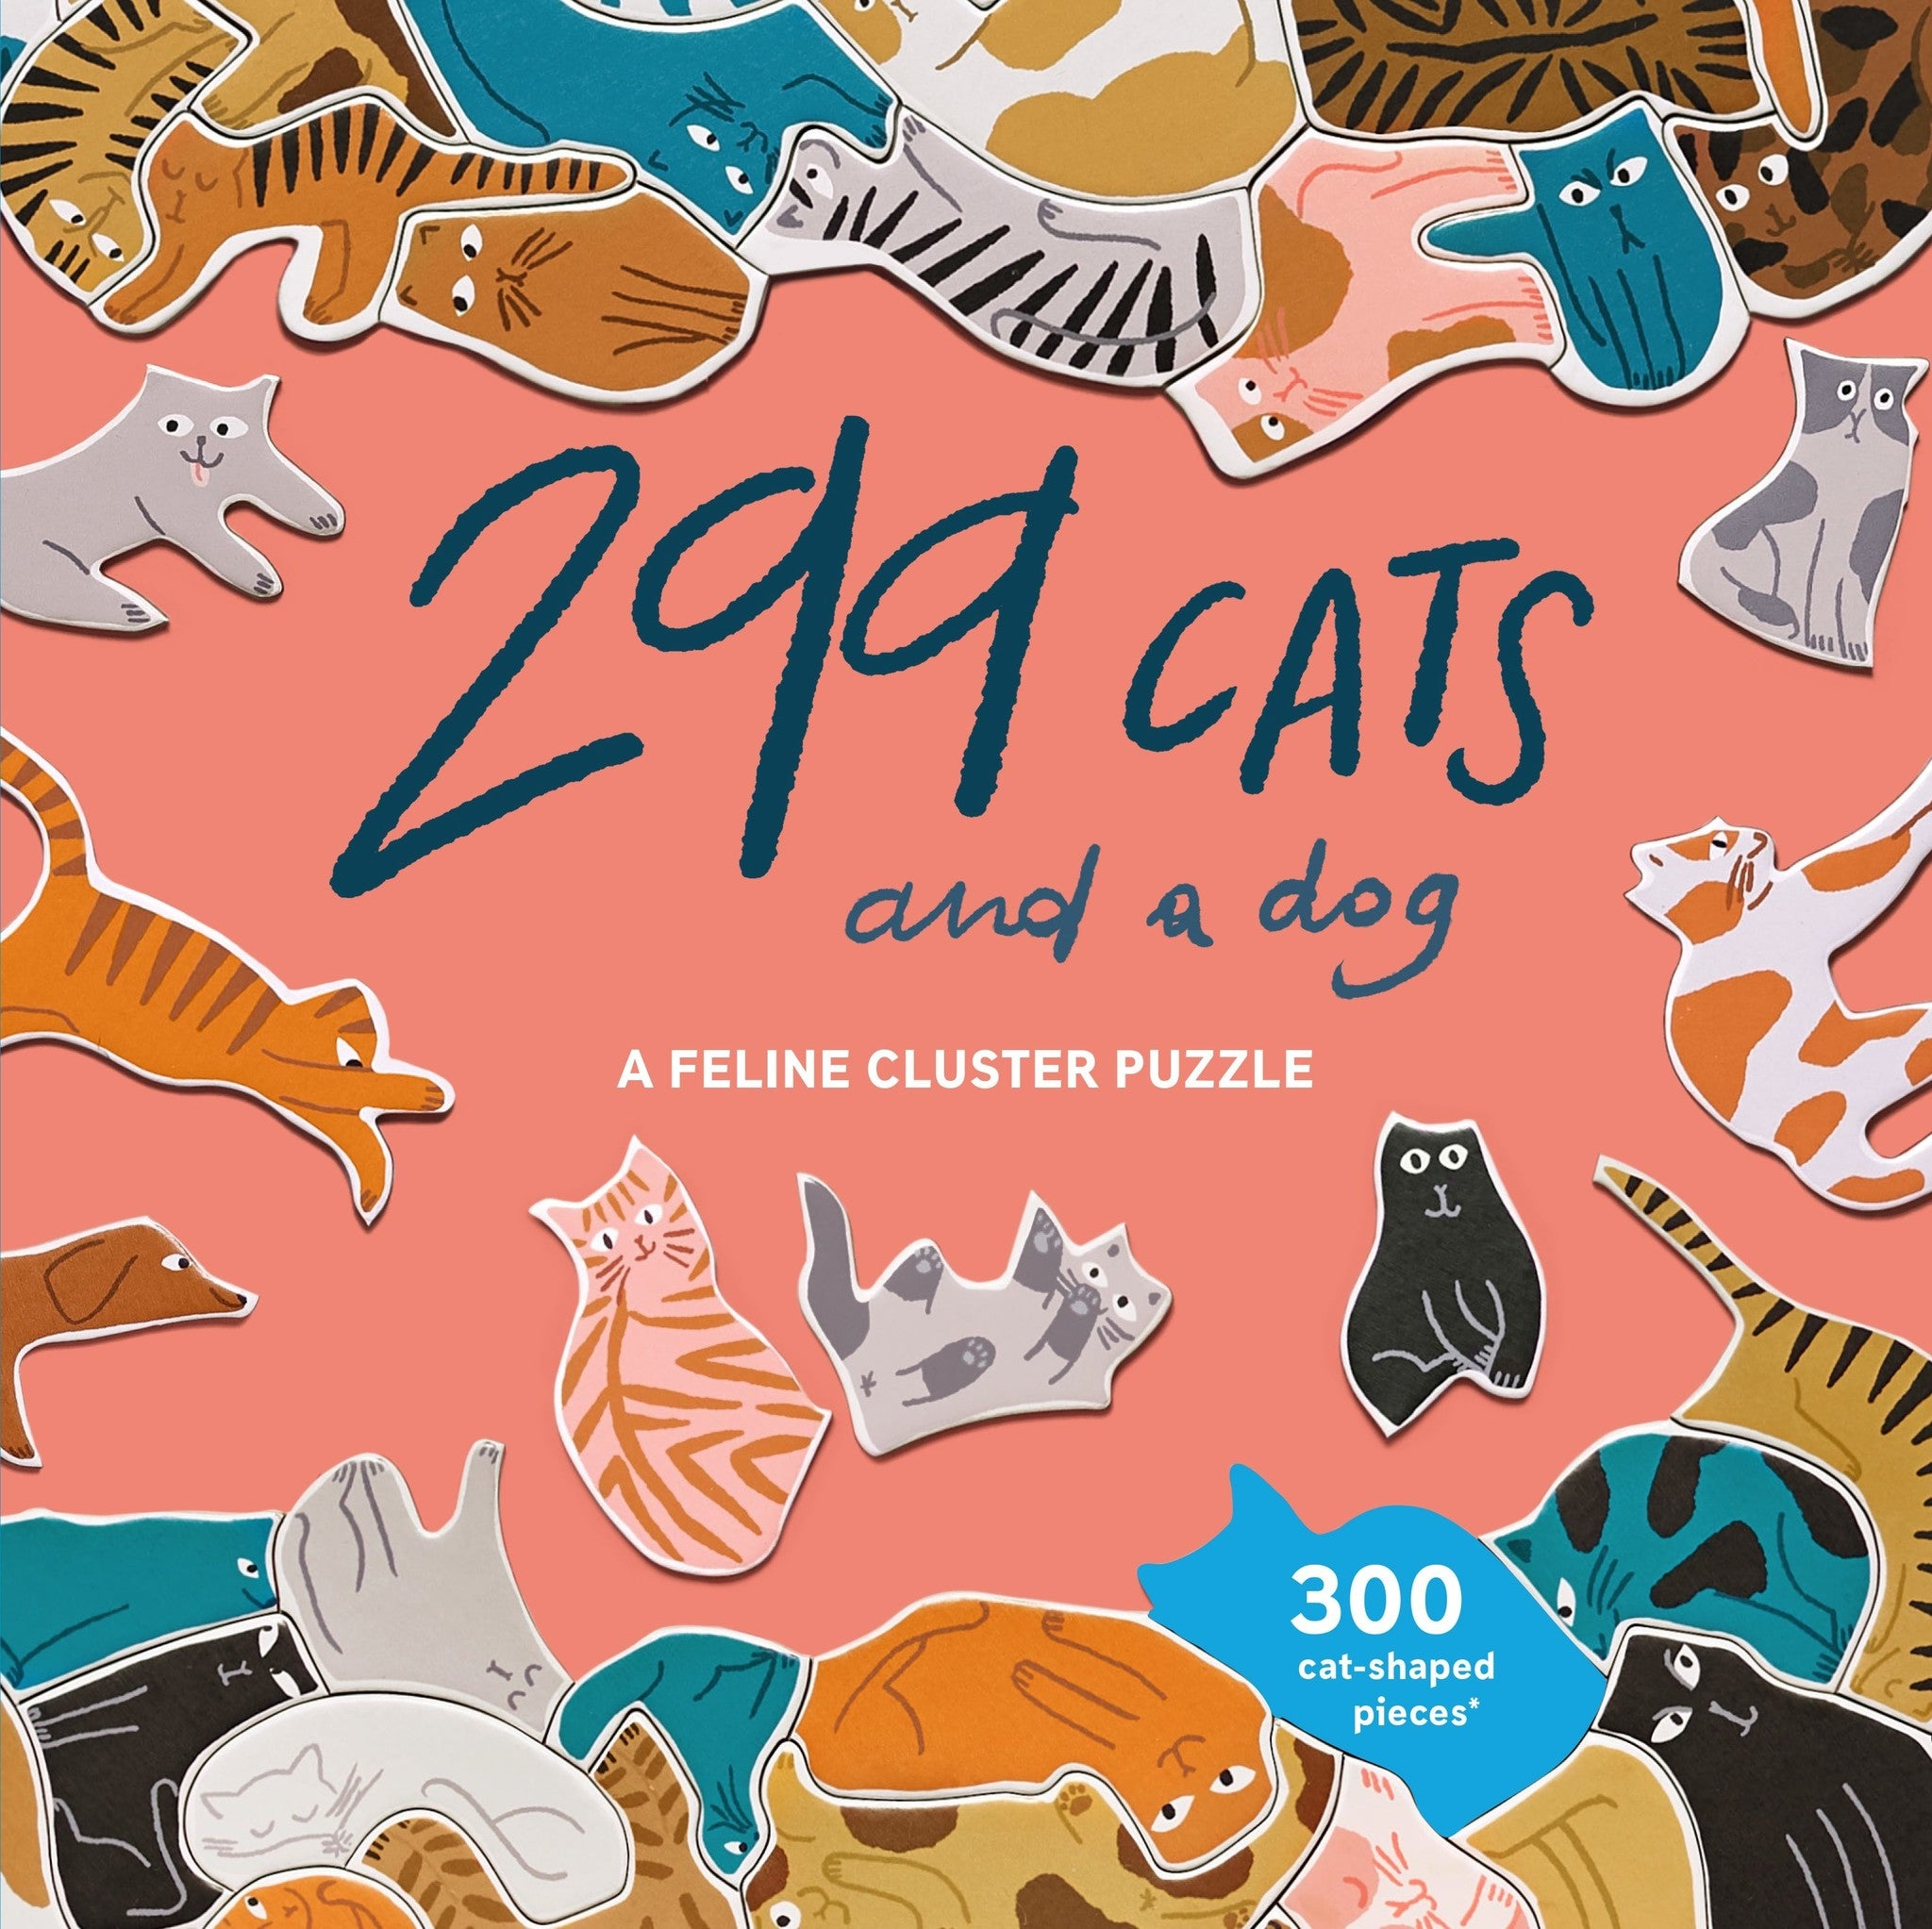 299 Cats and a Dog - A Feline Cluster Puzzle